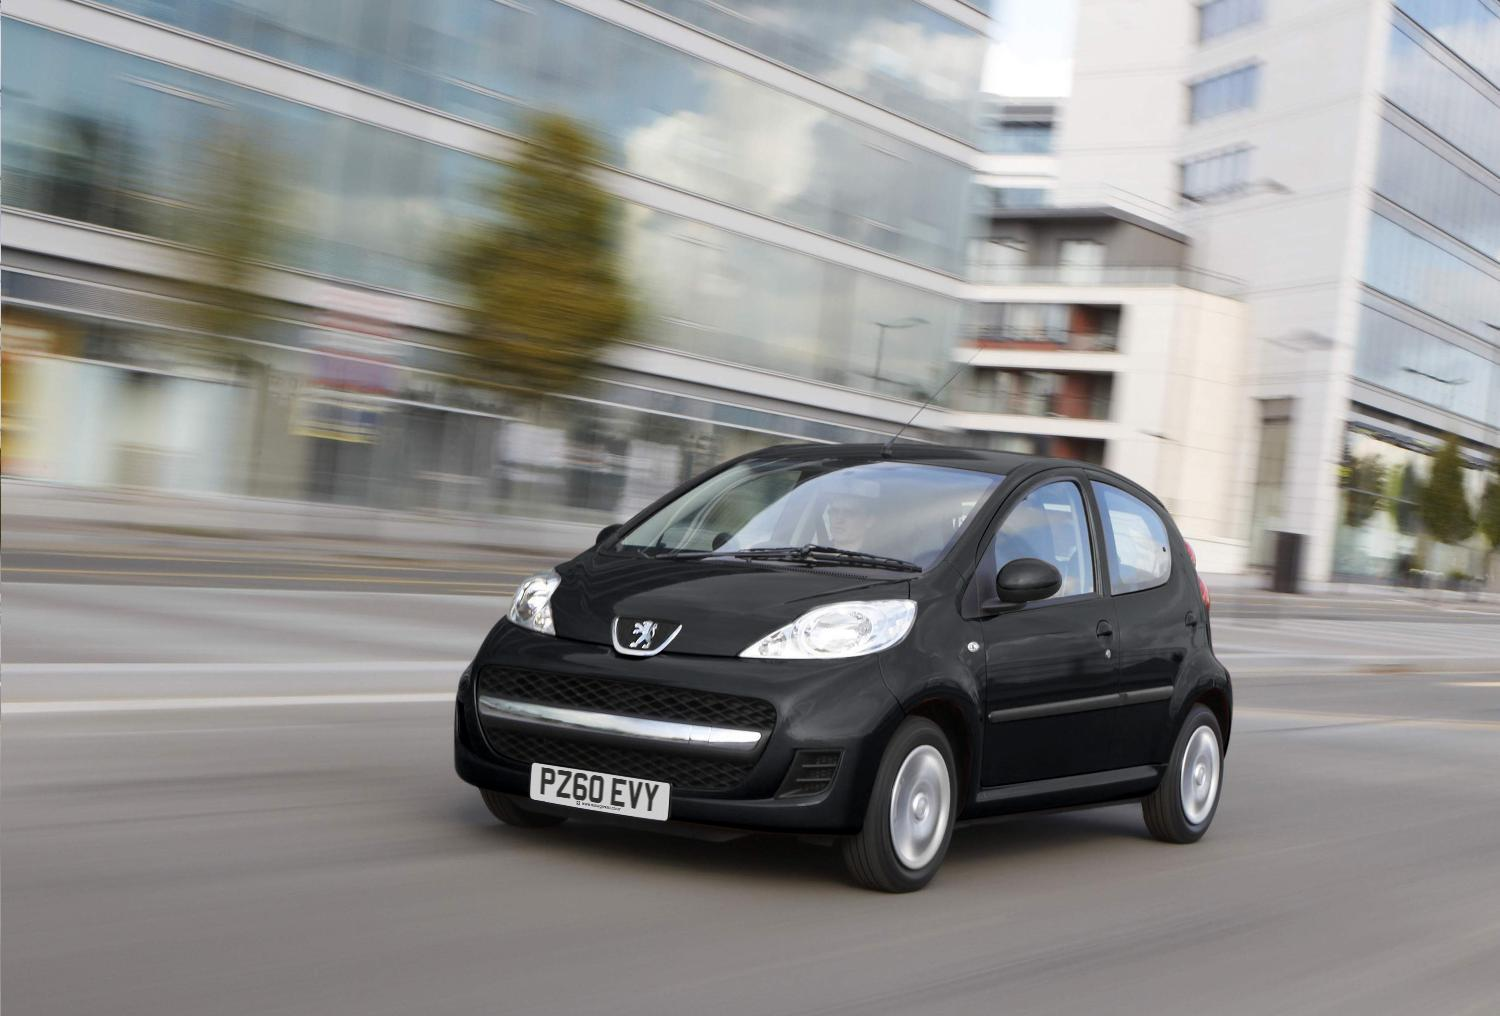 Peugeot Launches Special Edition 107 ENVY UK